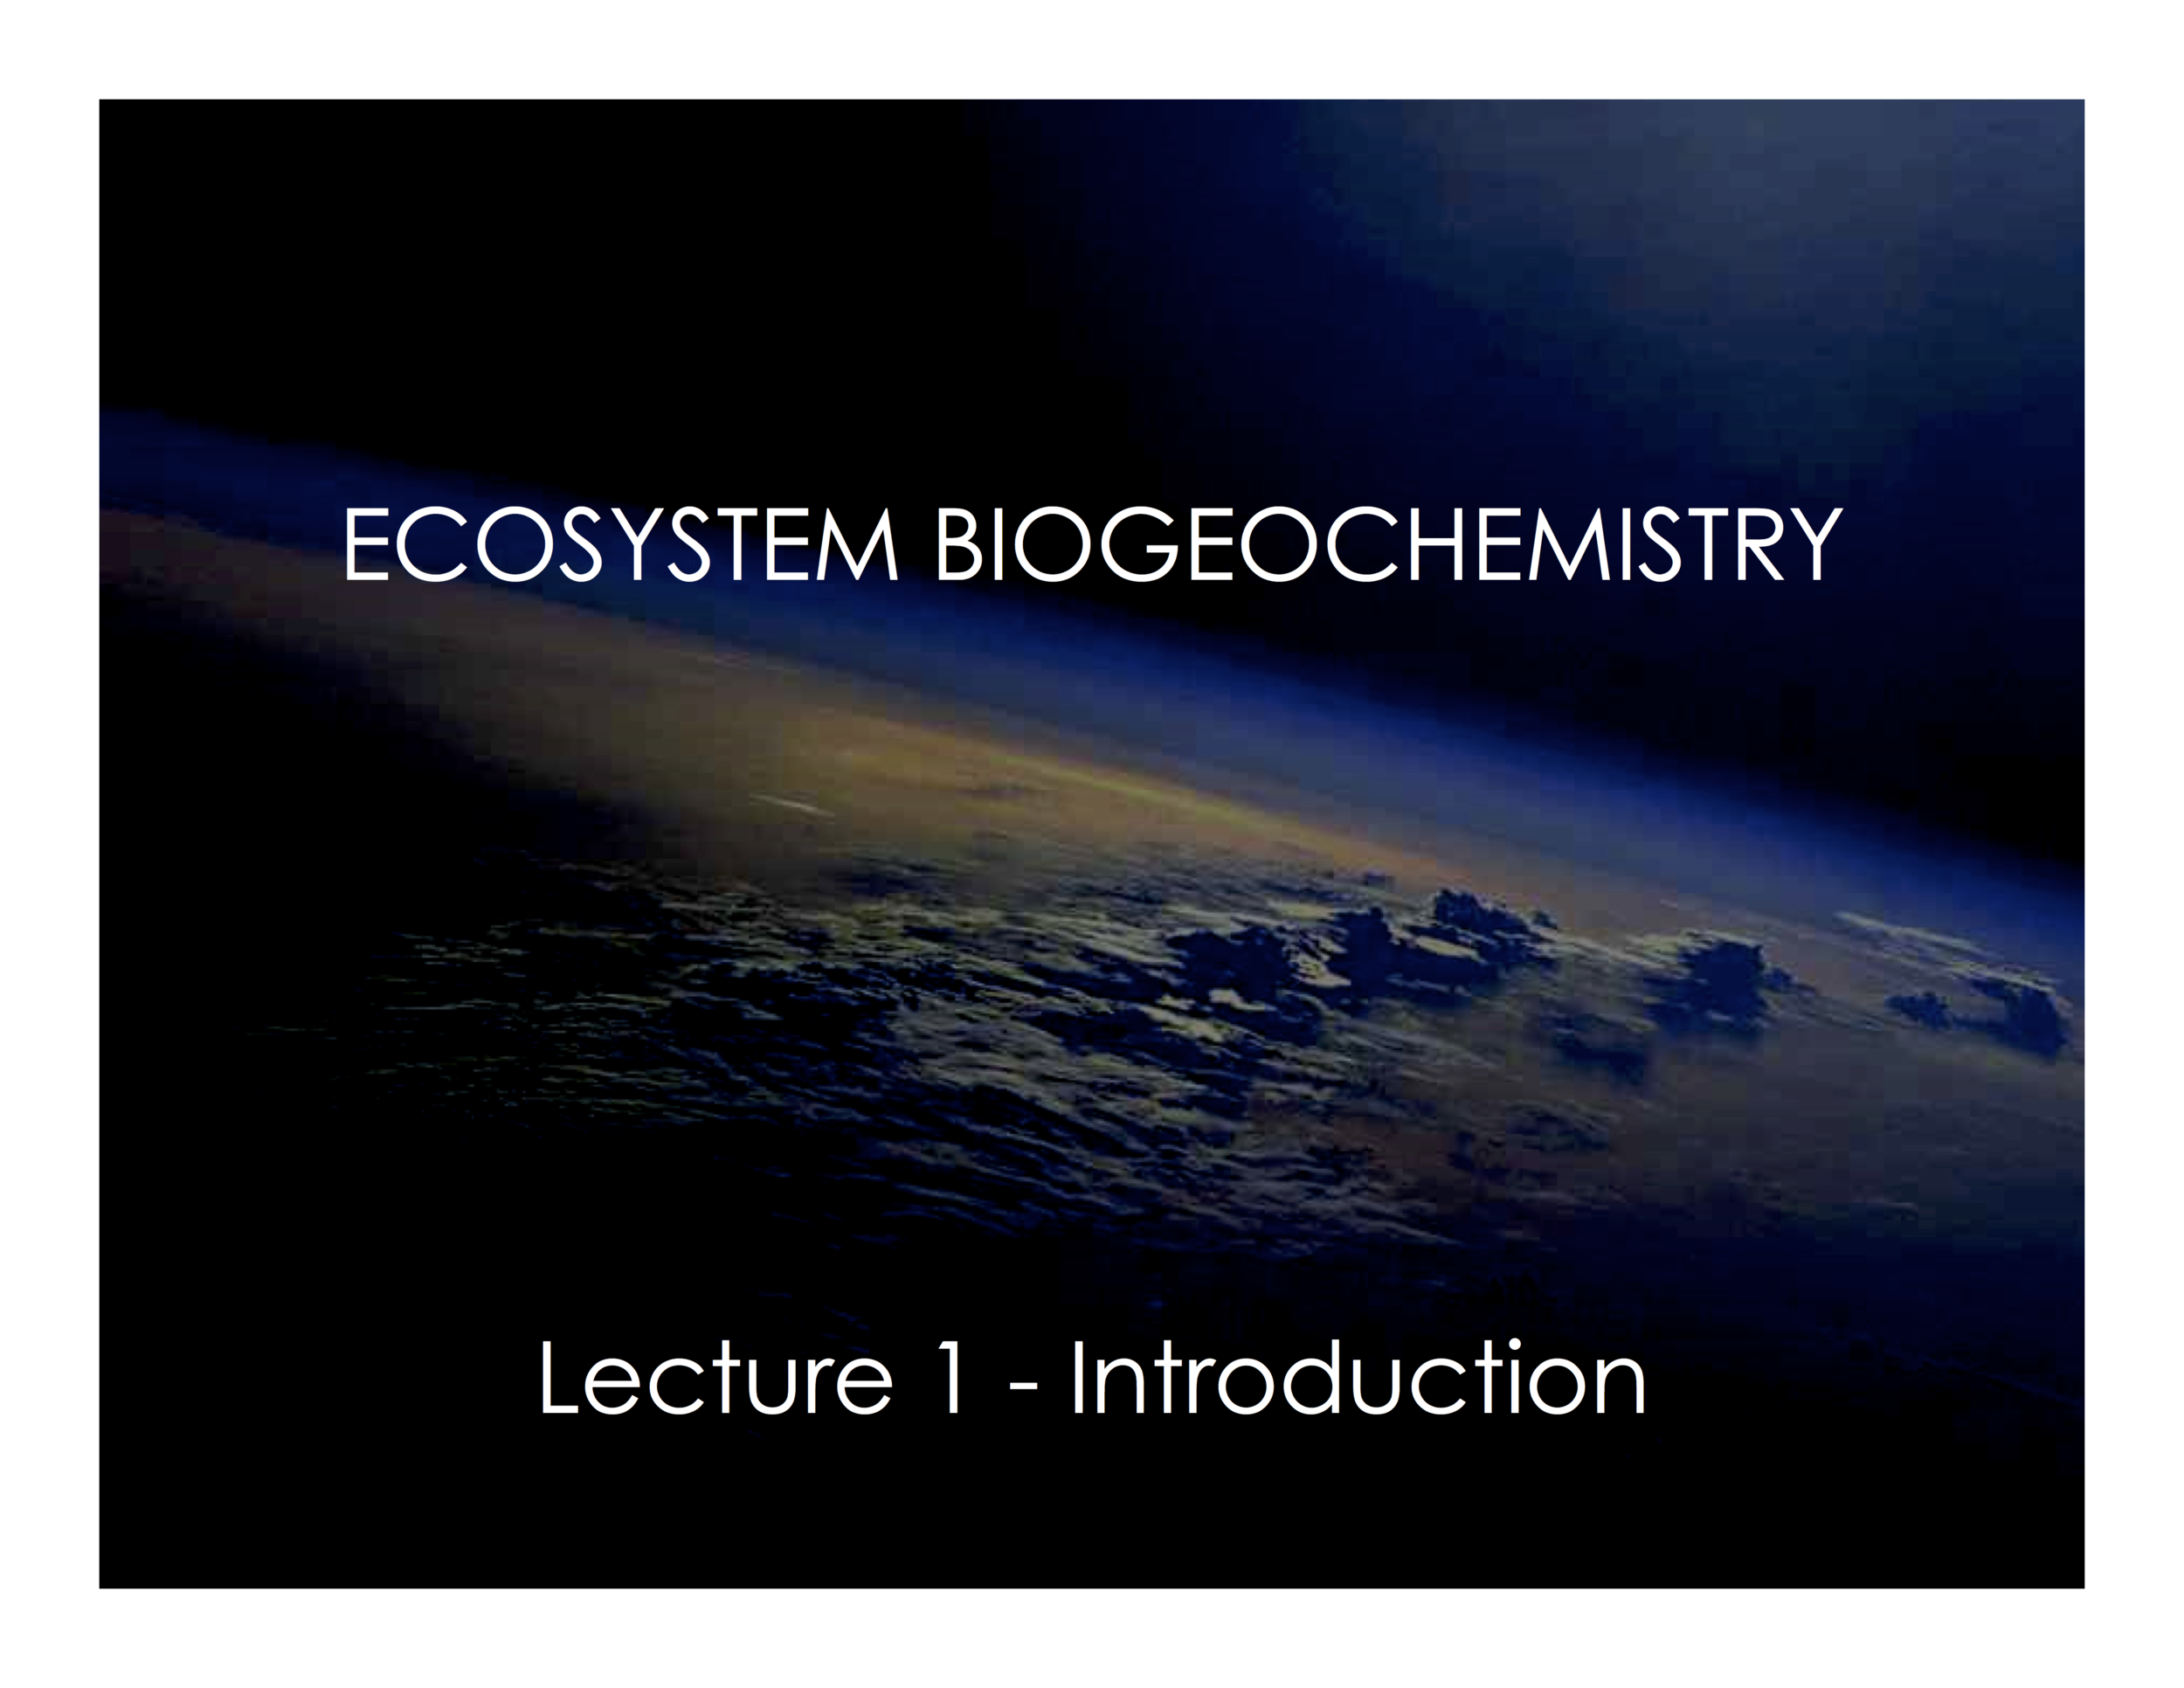 Lecture 1 - Introduction - COVER.png